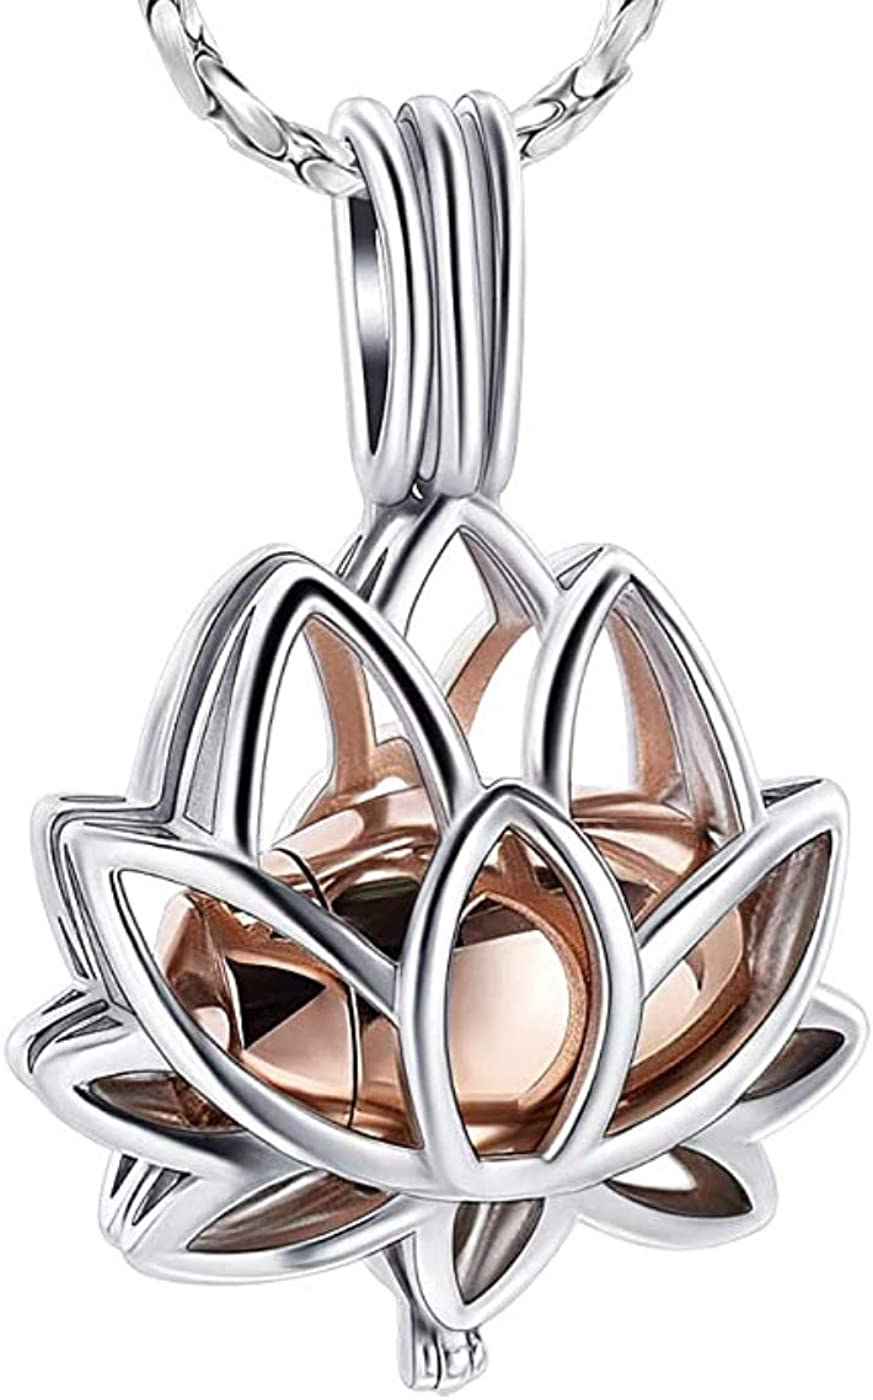 CoolJewelry Urn Necklace for Oklahoma City Mall Ashes Lotus Sale Special Price Pendan Cremation Flower